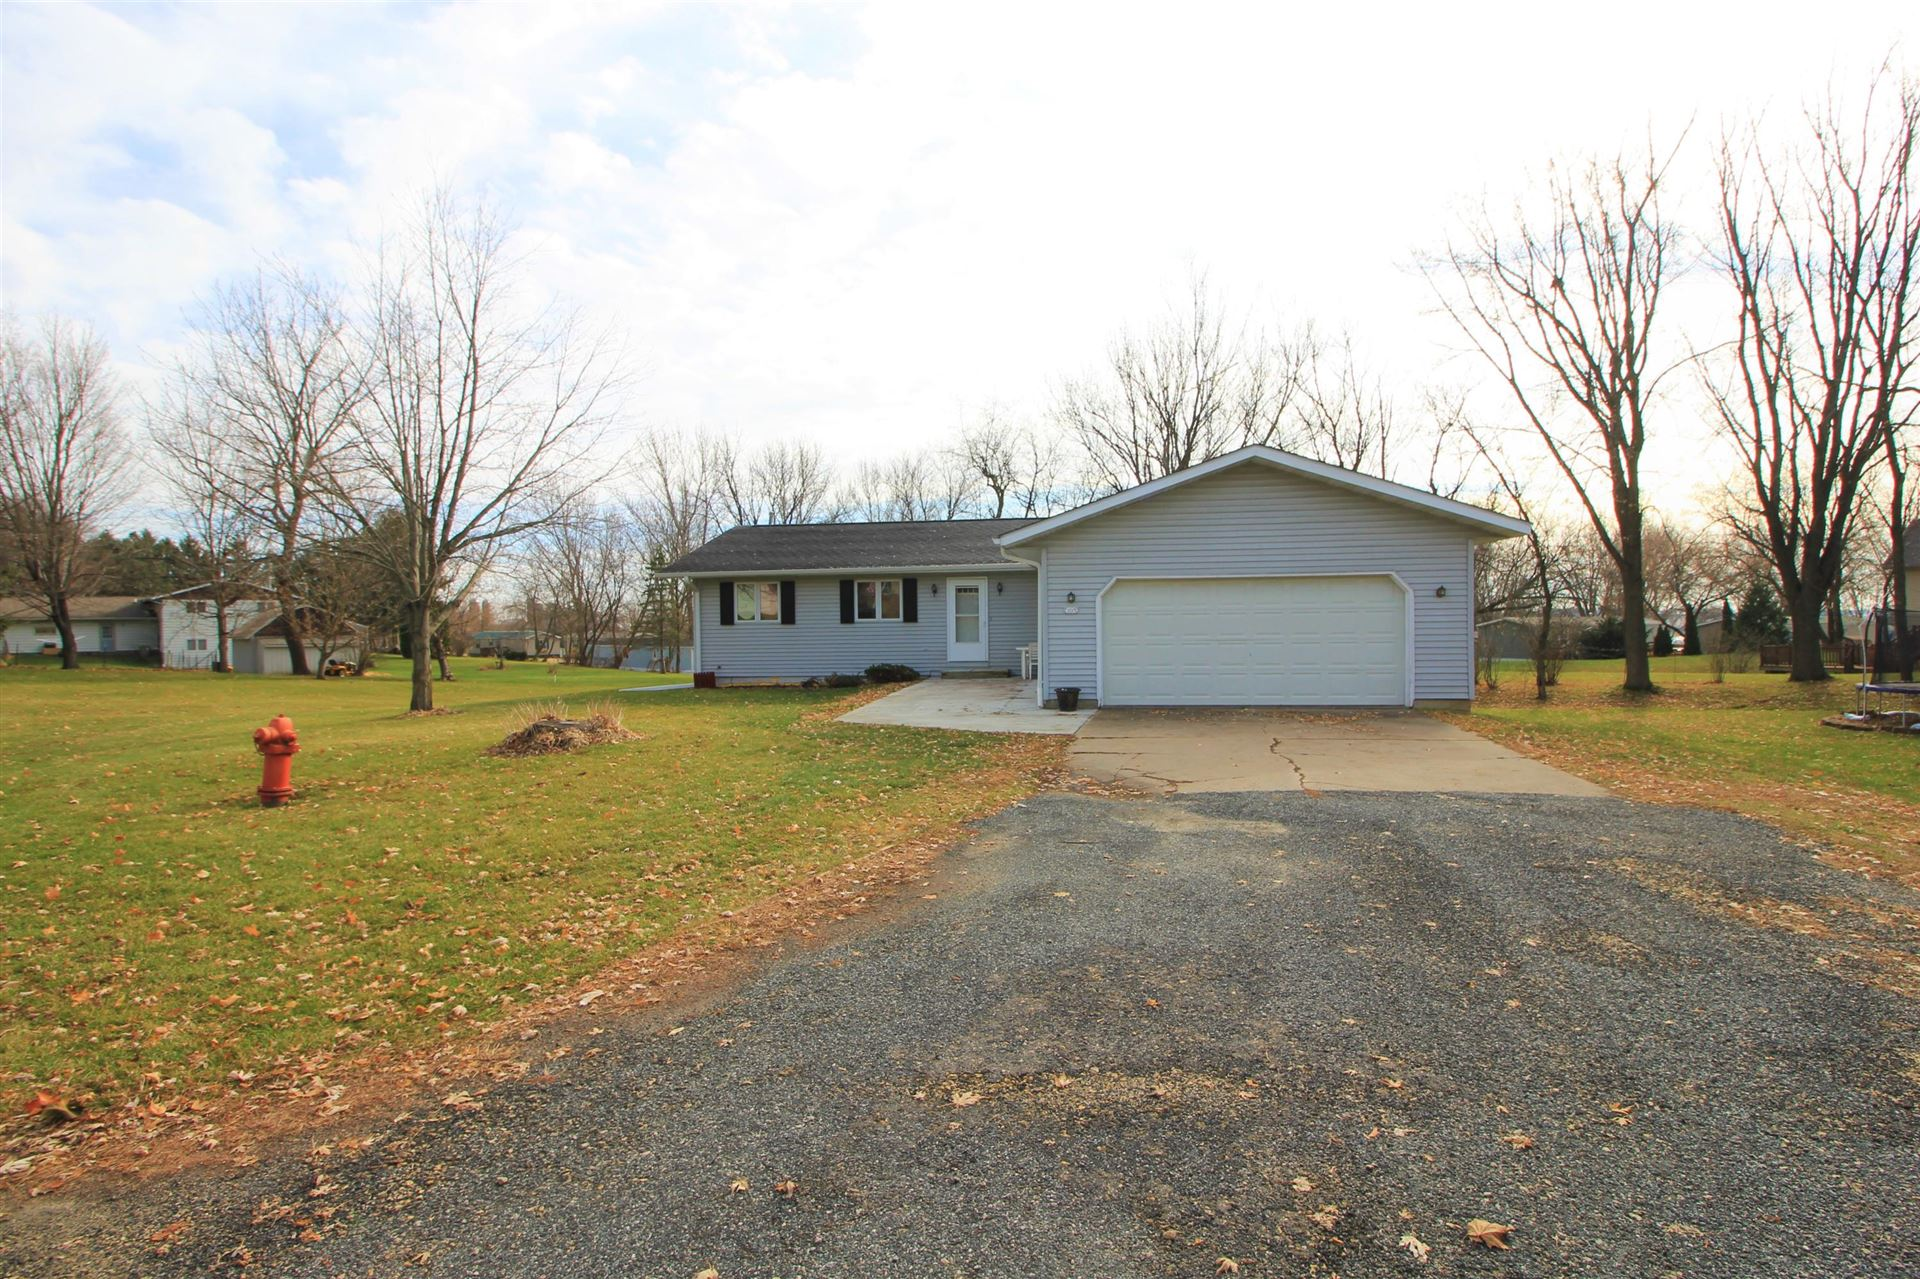 103 Pederson Ct, Westby, WI 54667 - MLS#: 1718704